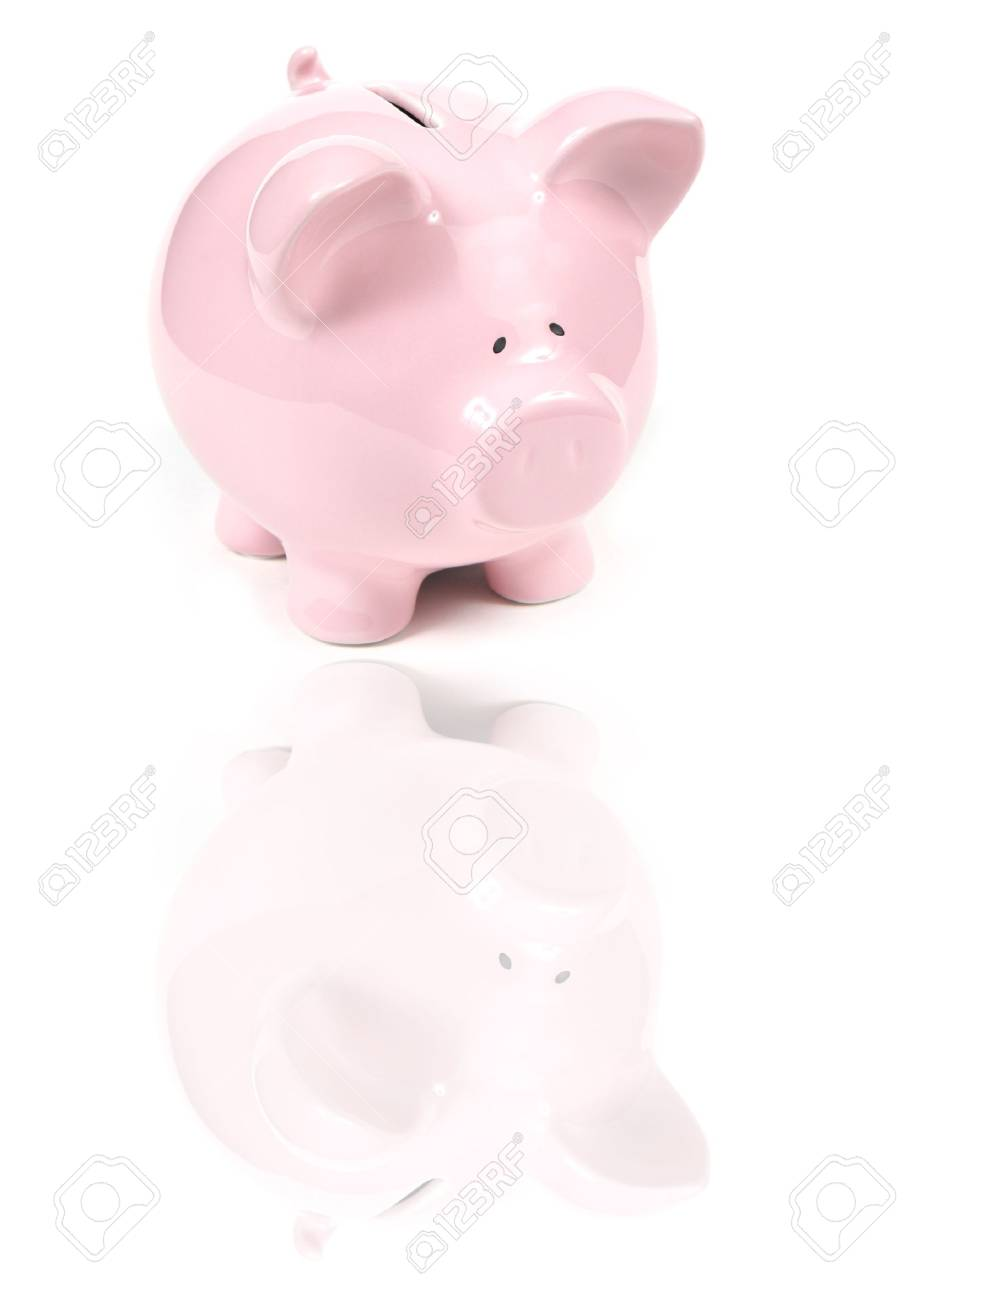 Pink Piggy Bank on isoalted on white background with reflexion Stock Photo - 785868